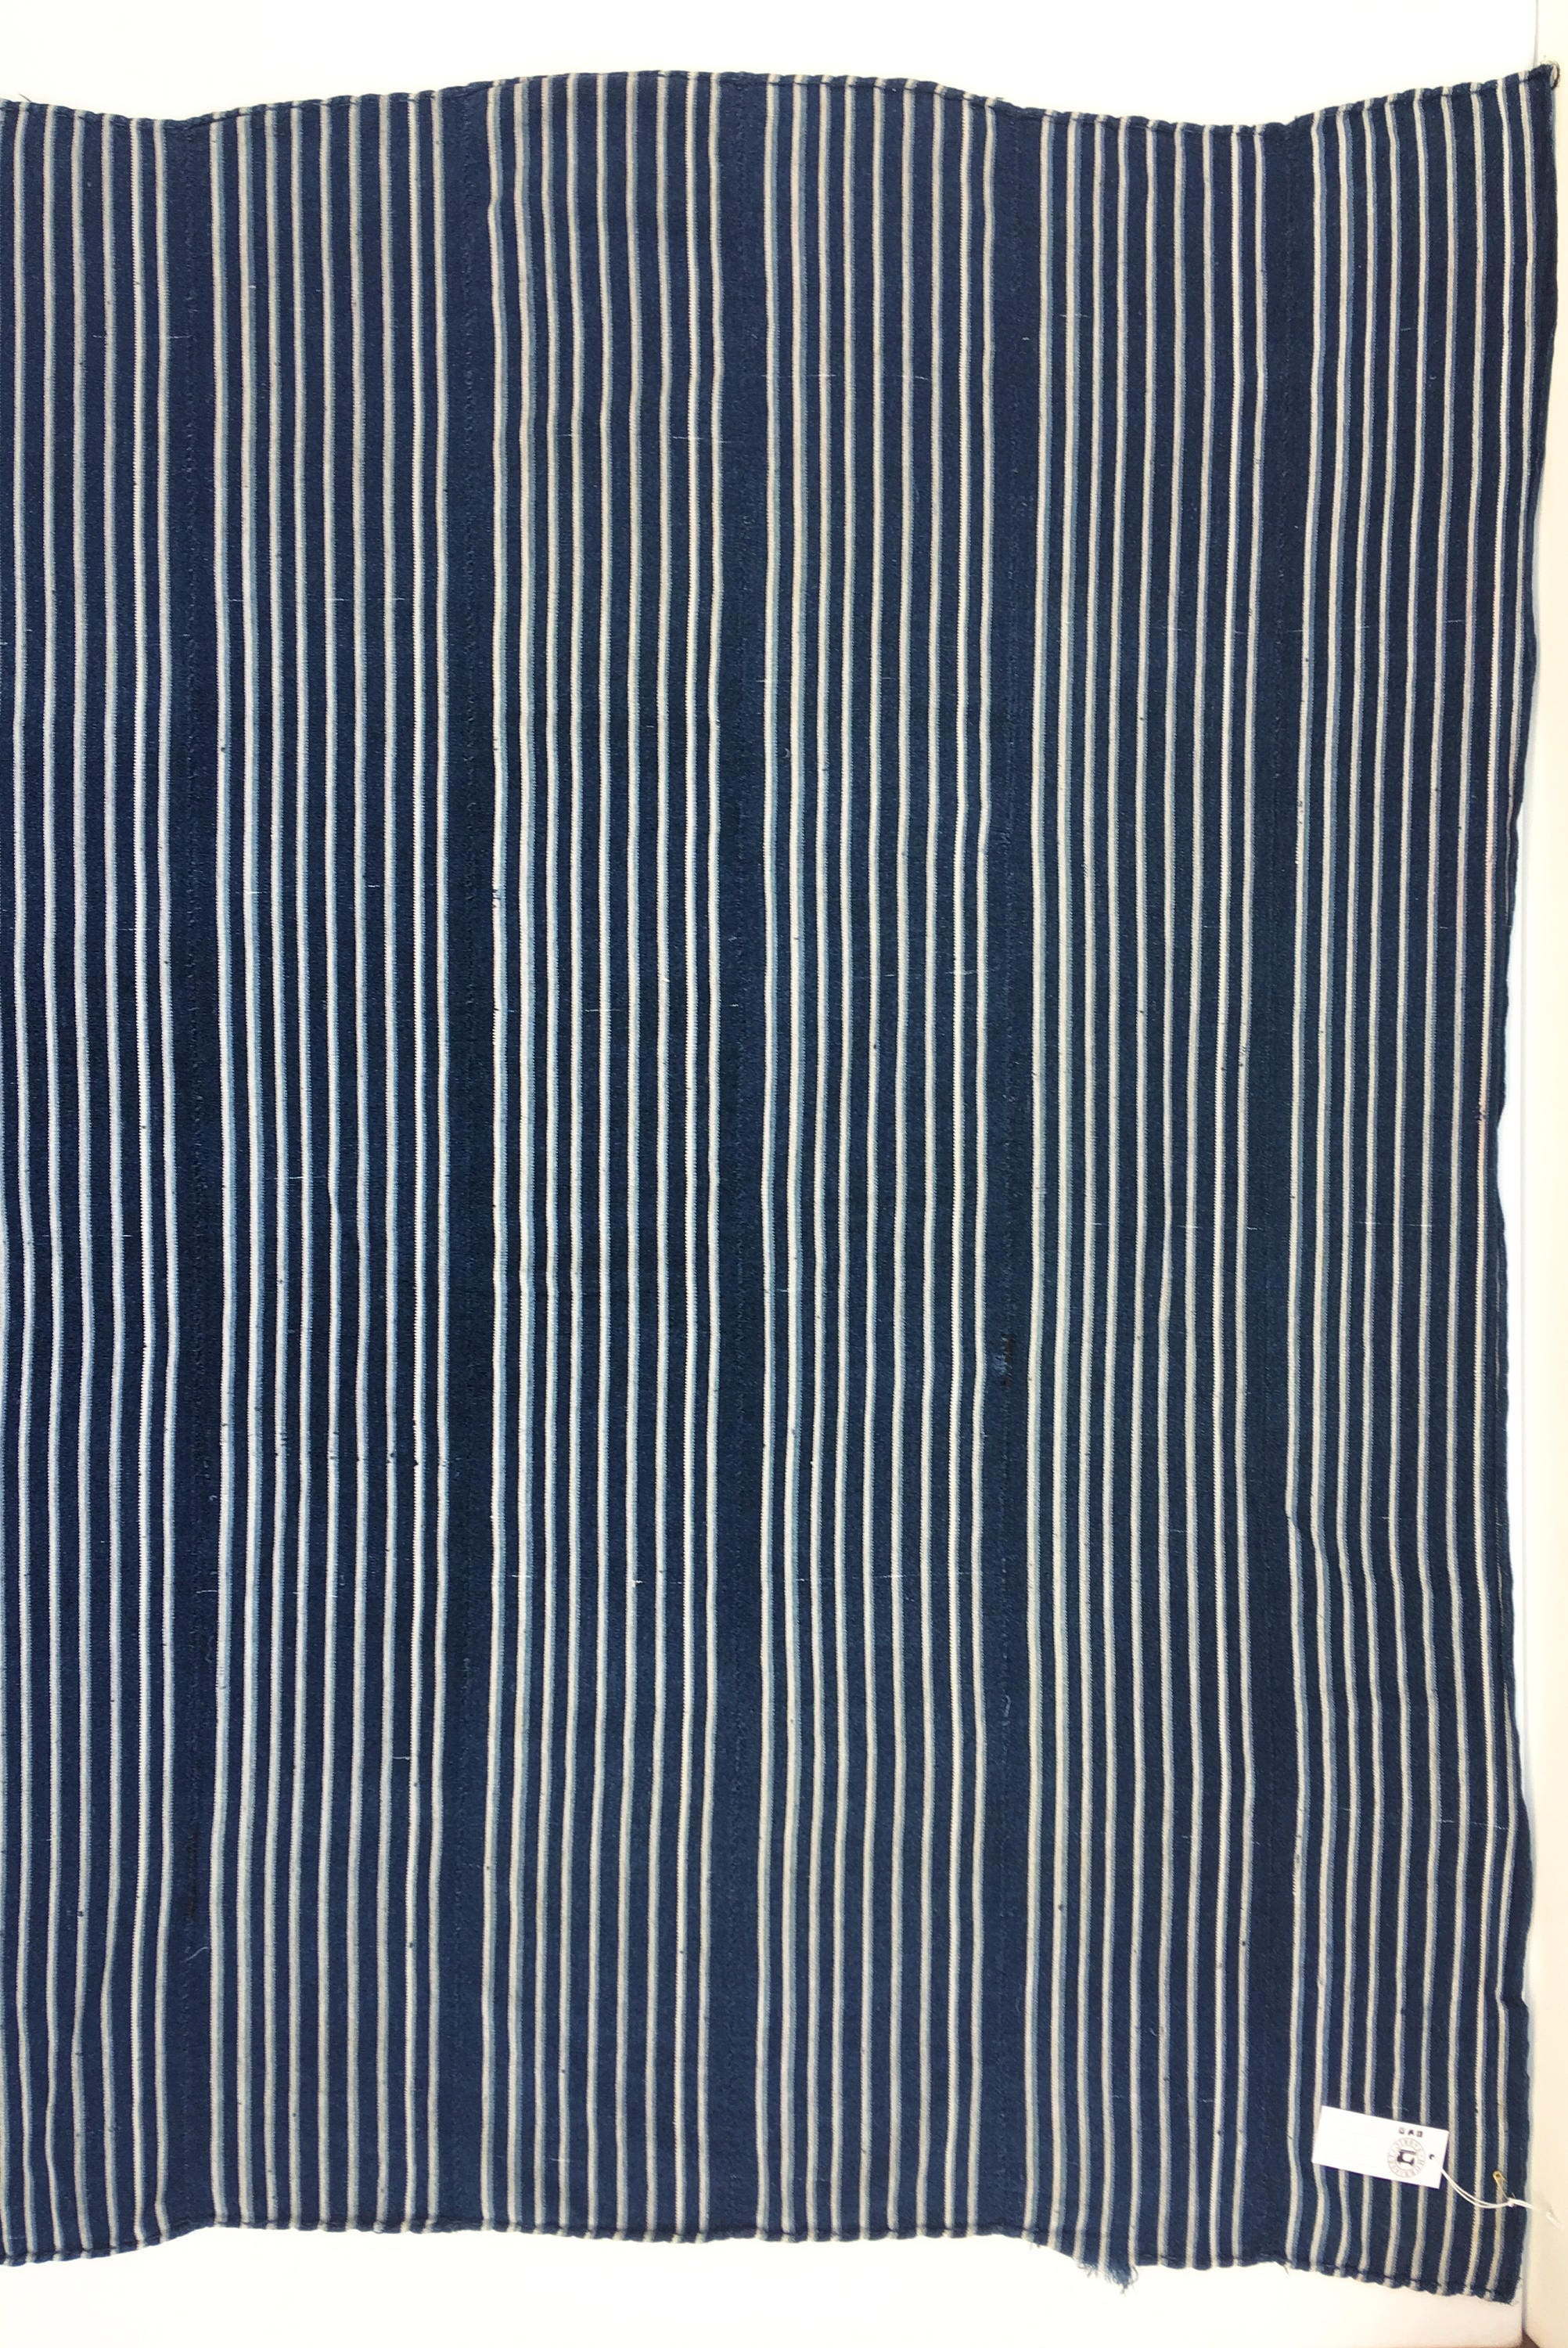 Clean vintage textile Mud Cloth in a blue and white Indigo Stripe African